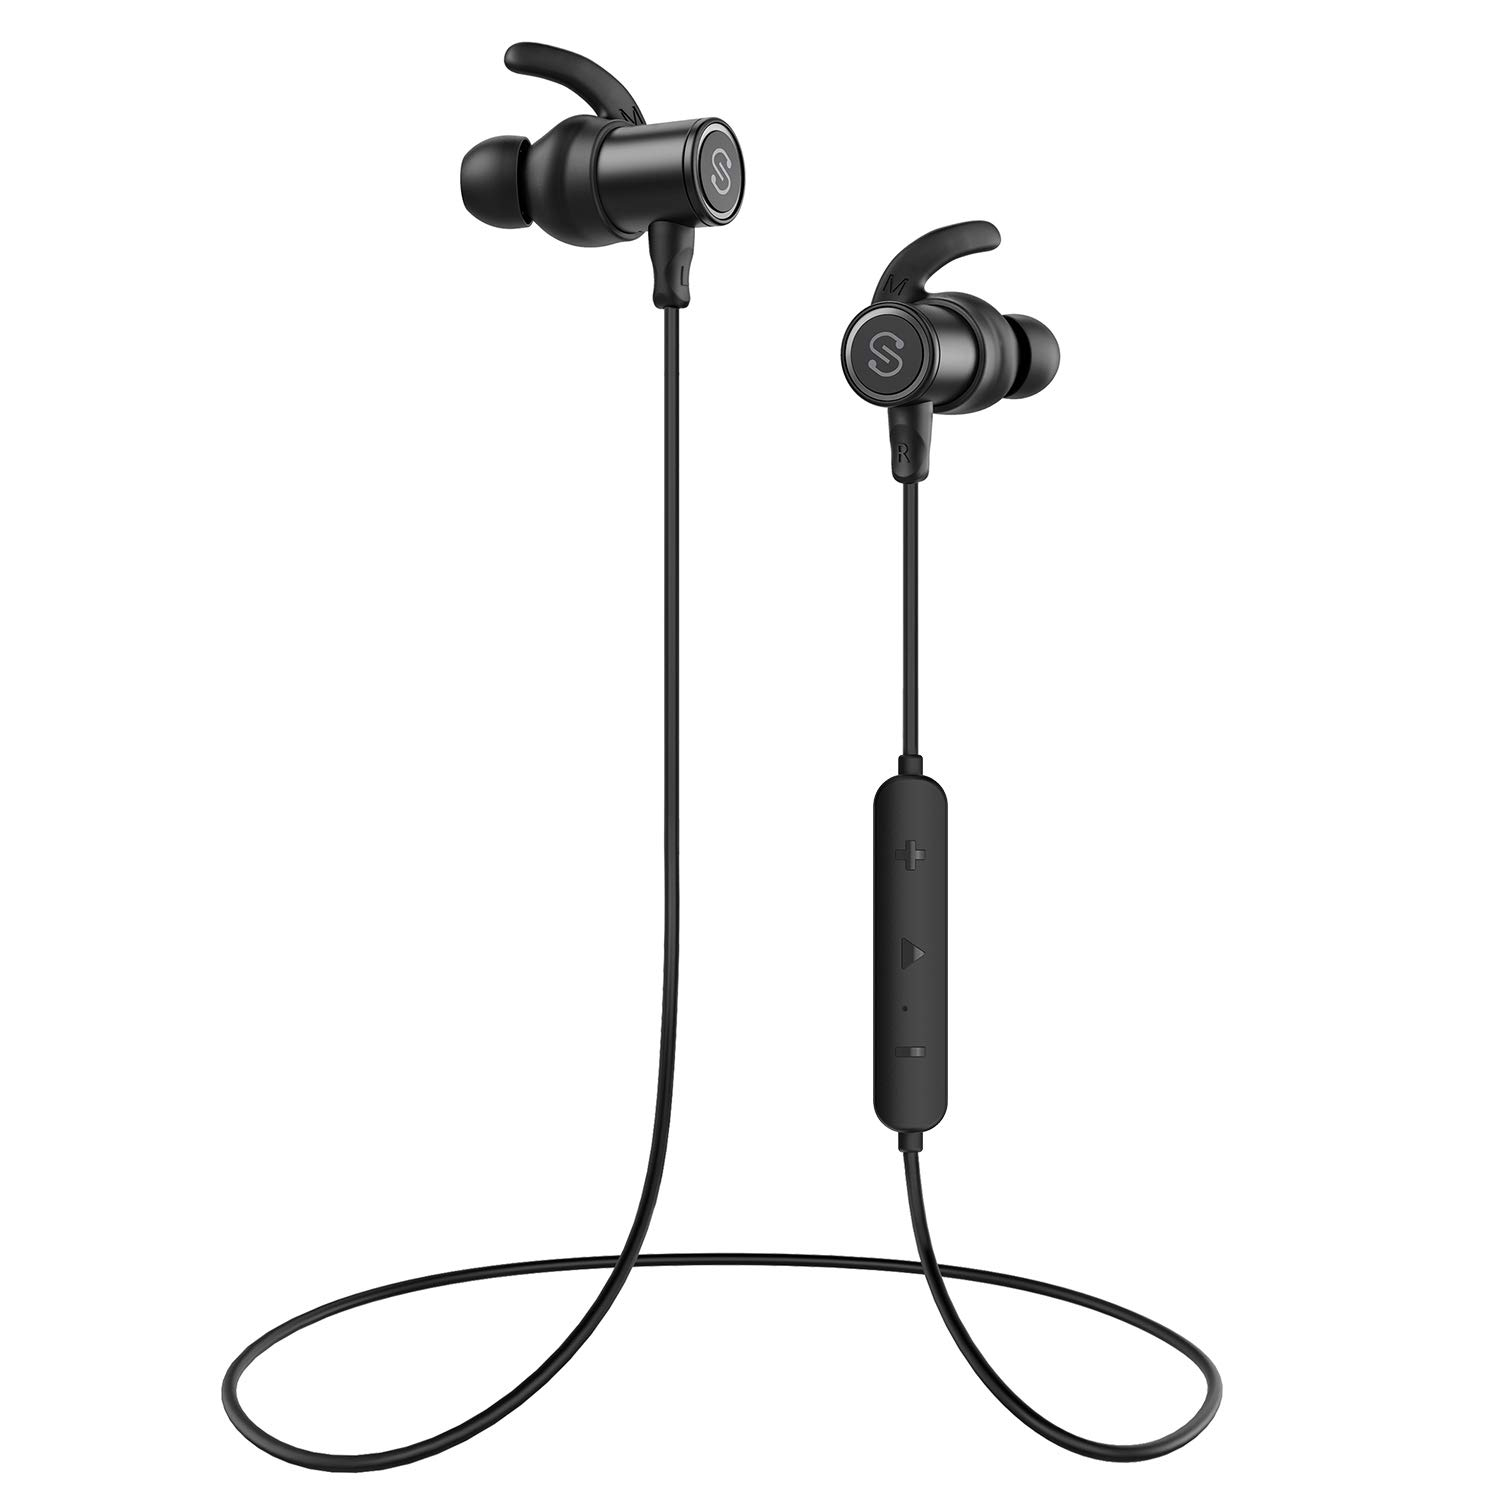 SoundPEATS Magnetic Wireless Earbuds Bluetooth Headphones Sport in-Ear Sweatproof Earphones with Mic (Super Sound Quality, IPX6, Bluetooth 4.1, aptx, 8 Hours Play Time, Secure Fit Design) (Black)